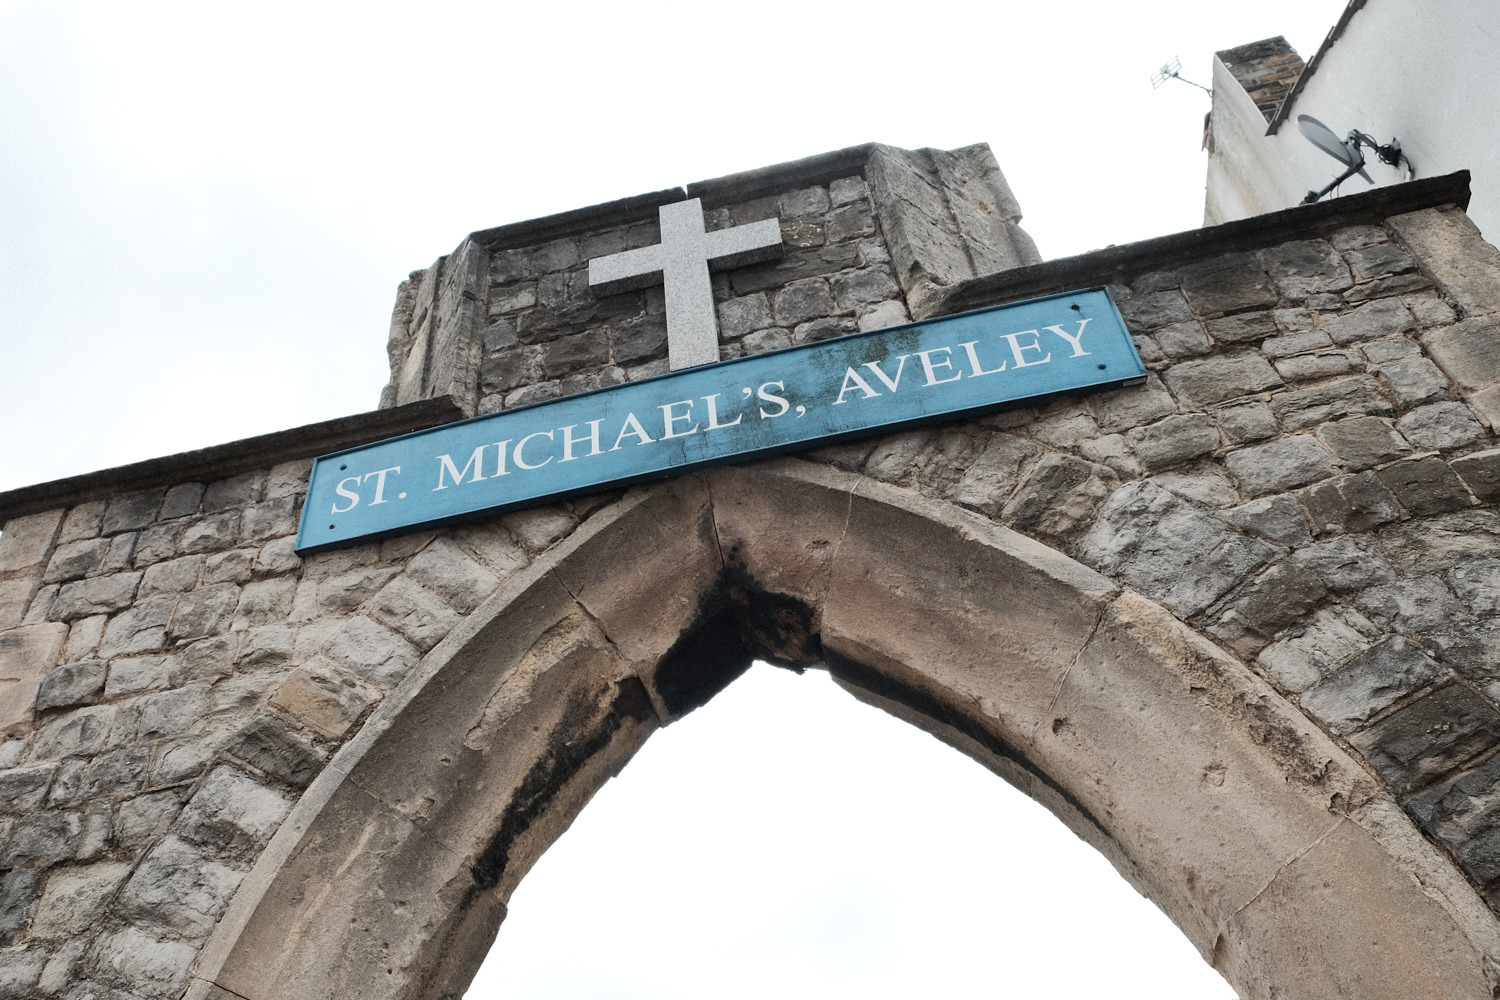 003-st-michaels-aveley.jpg